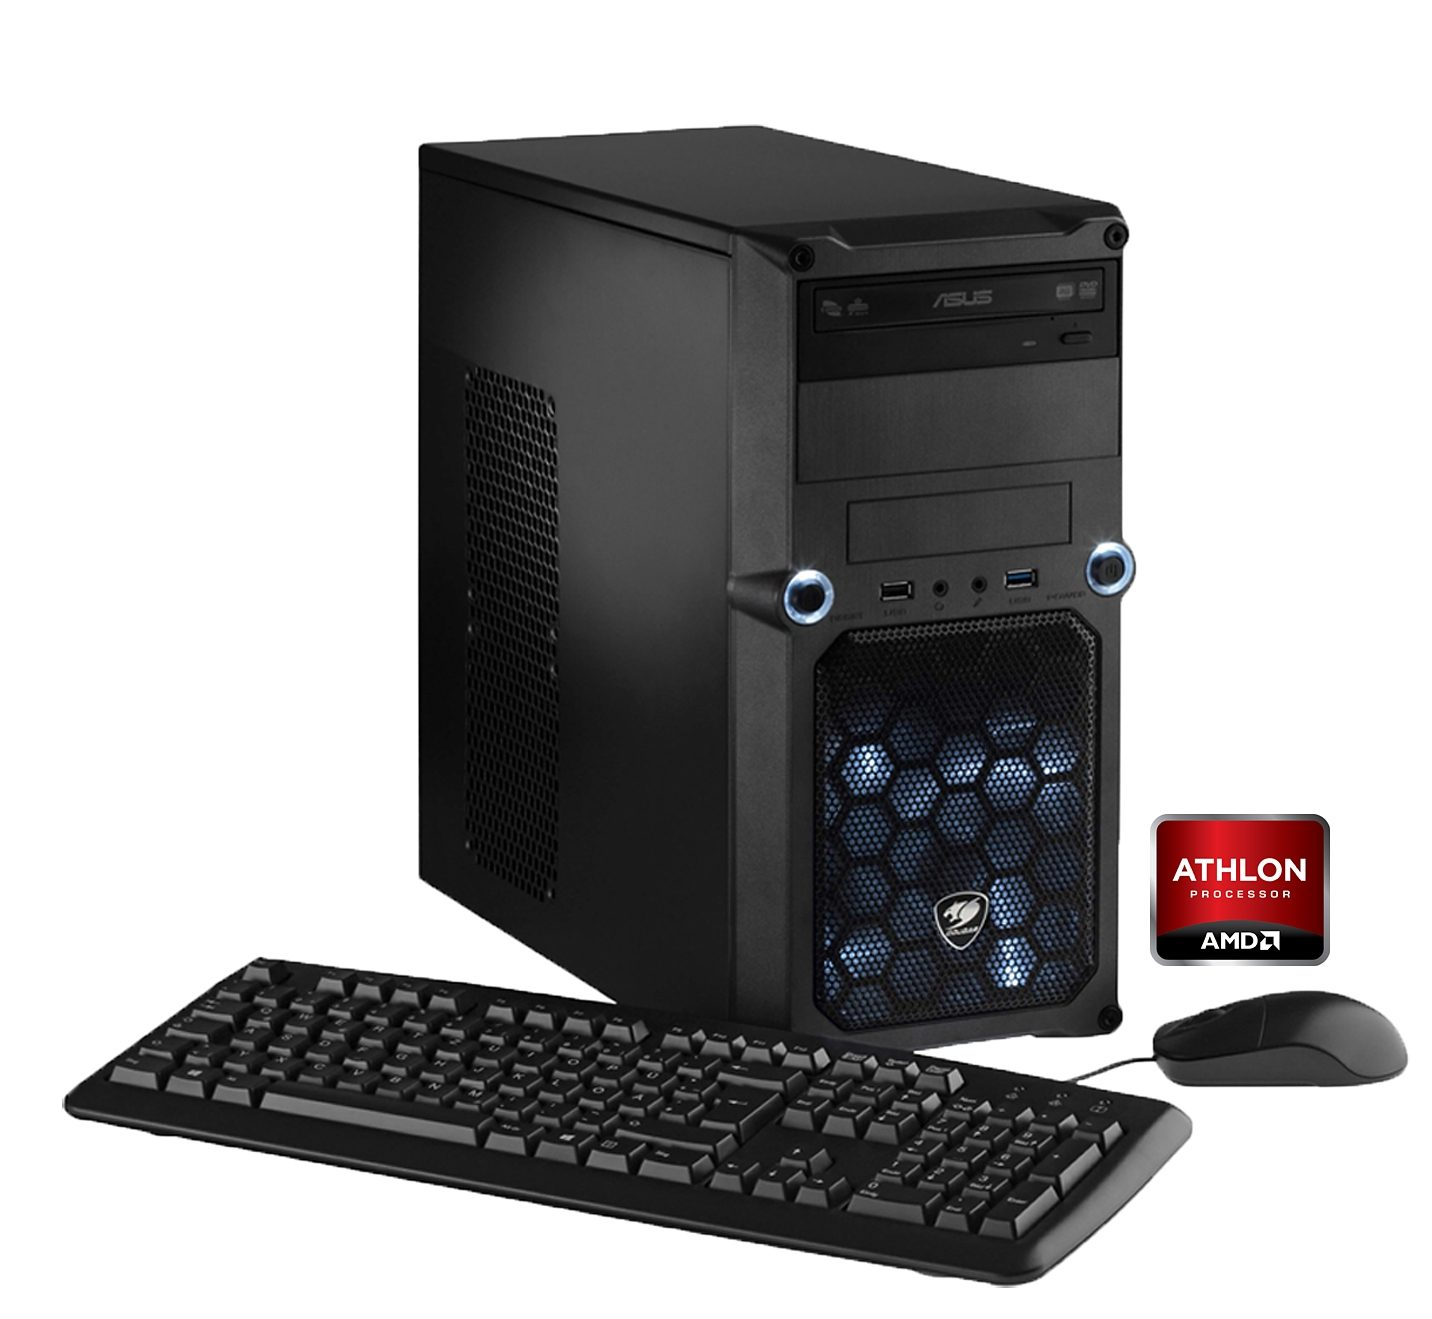 Hyrican PC AMD Athlon X4 860K, 8GB, 1TB, R7 240 2GB, Windows 10 »CyberGamer 4823«